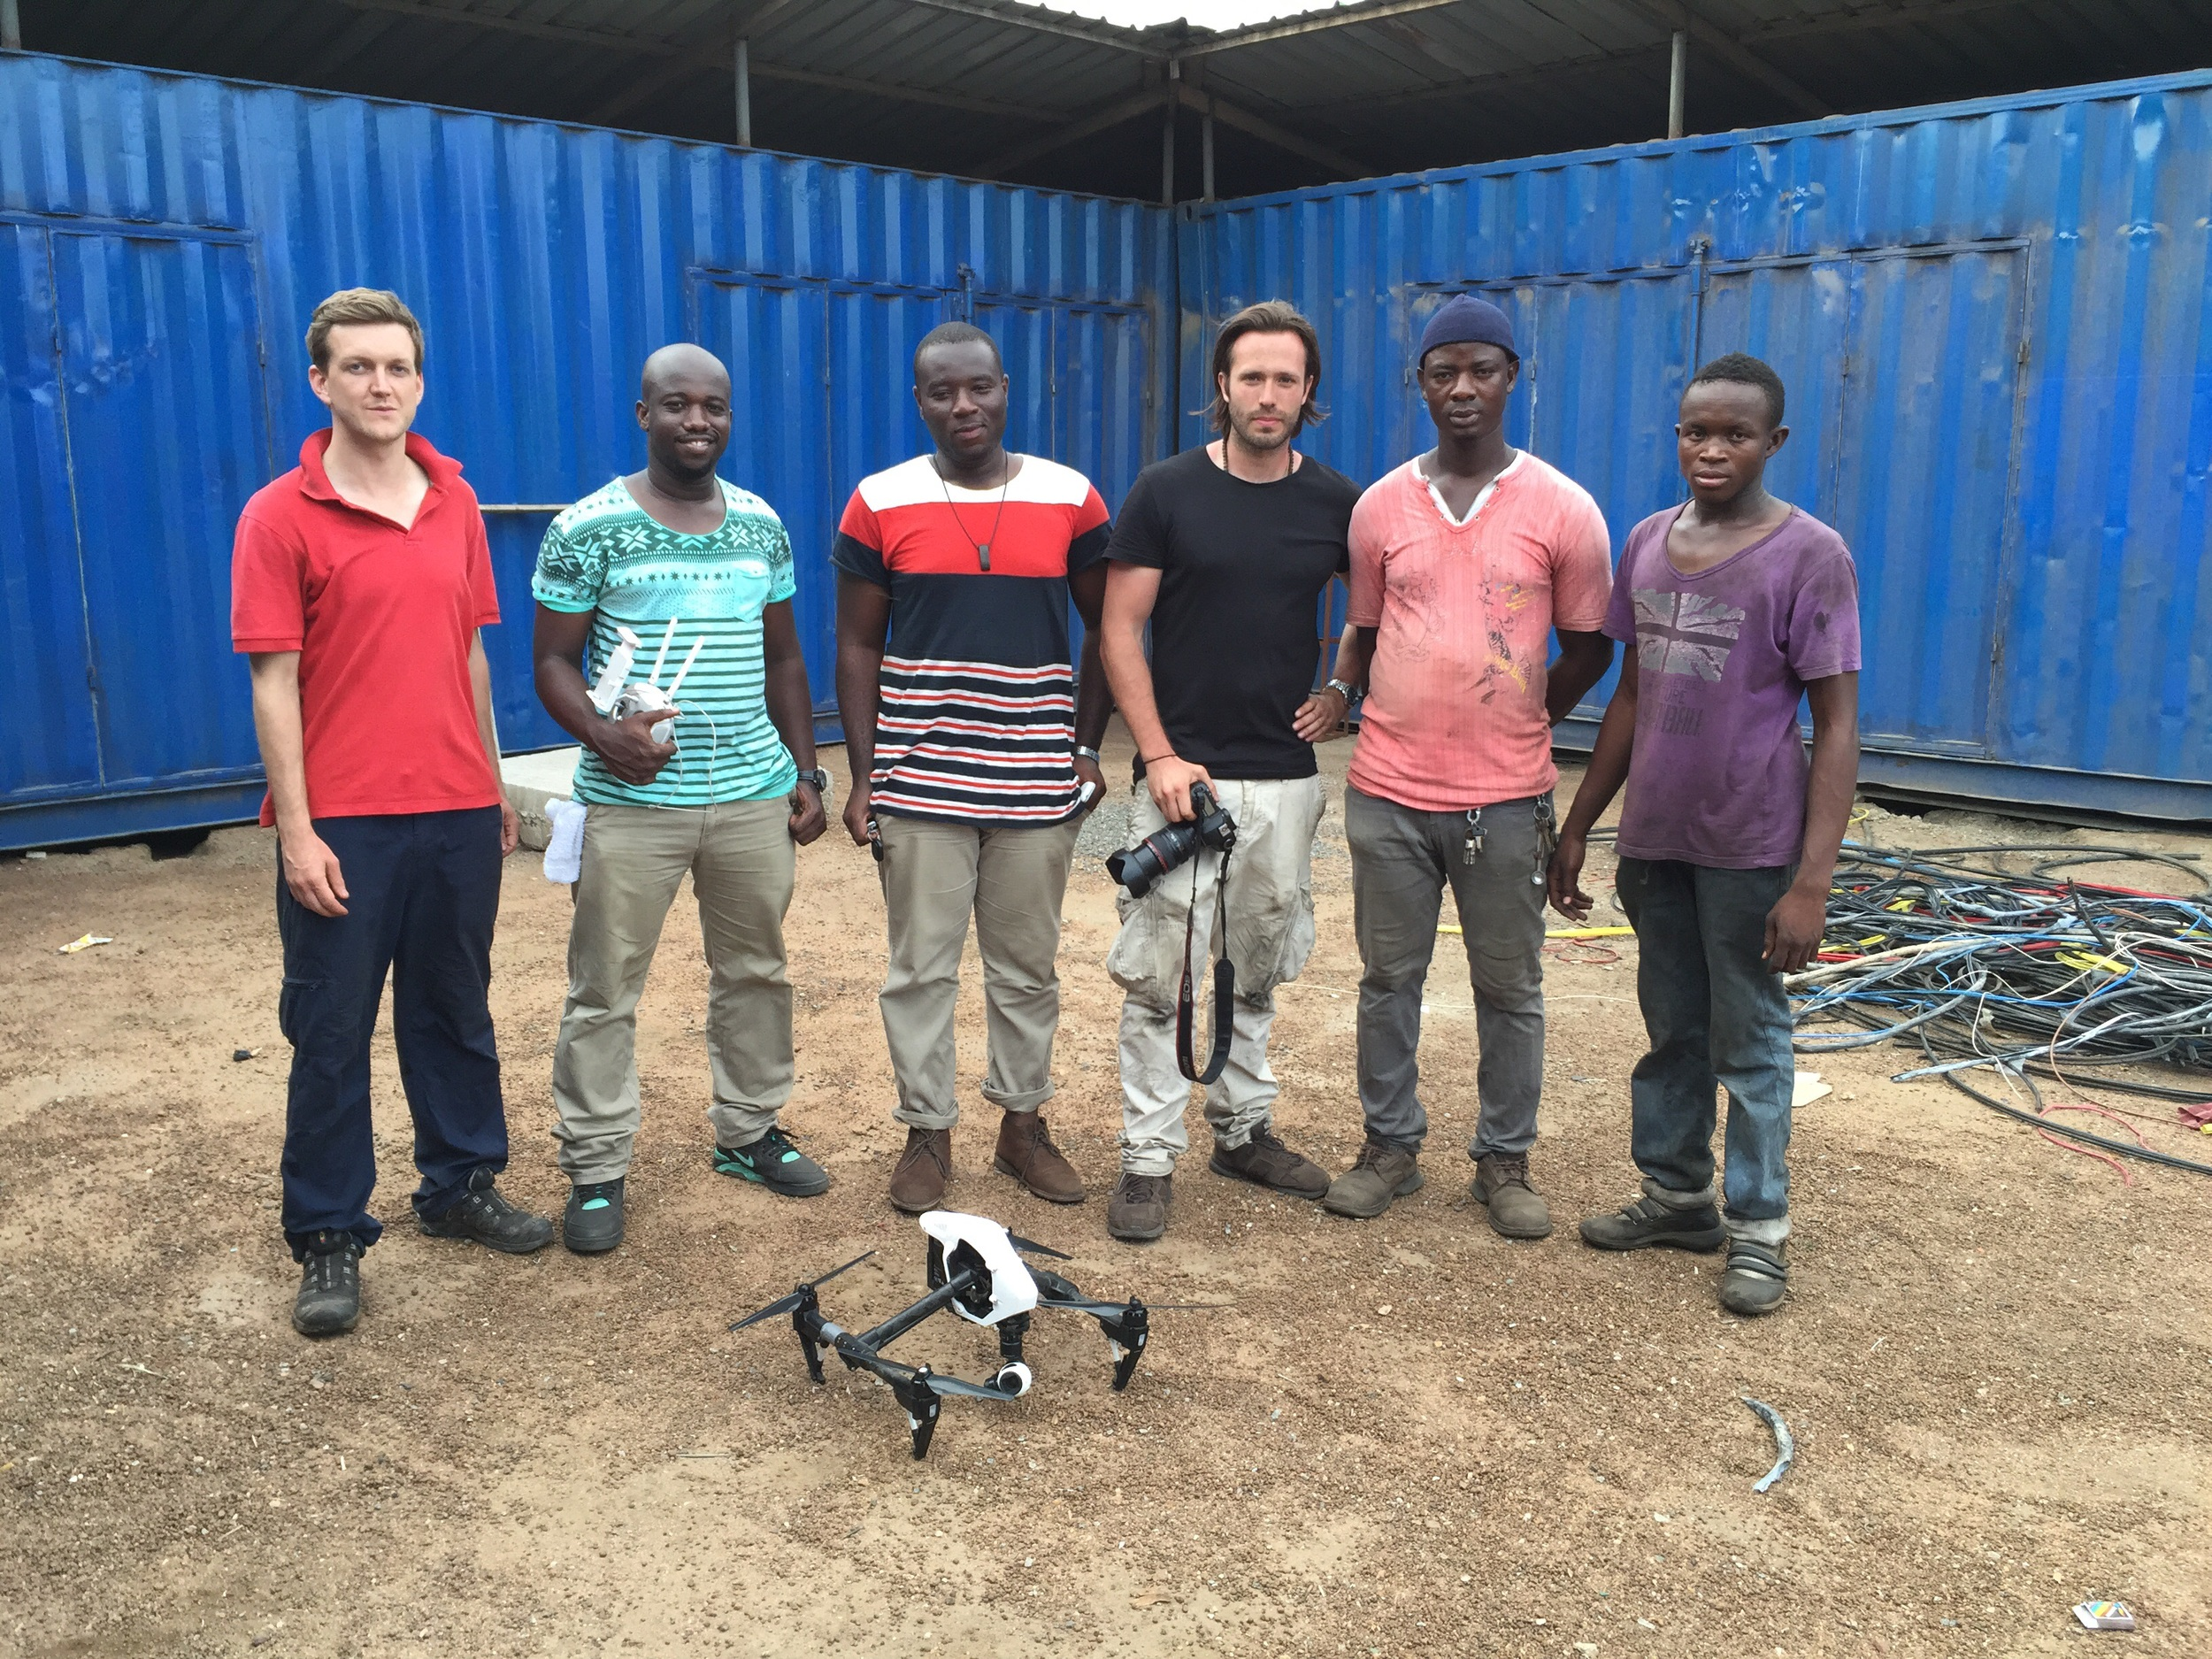 Drone filming at Agbogbloshie with (from left) Huw P-W, Hasel from Aeroshutter, our Ghana Production Manager Justice Anthony, Alexis Wilski, our Agbogbloshie guide Karim, and our actor for the day Abdullah (Carlos).